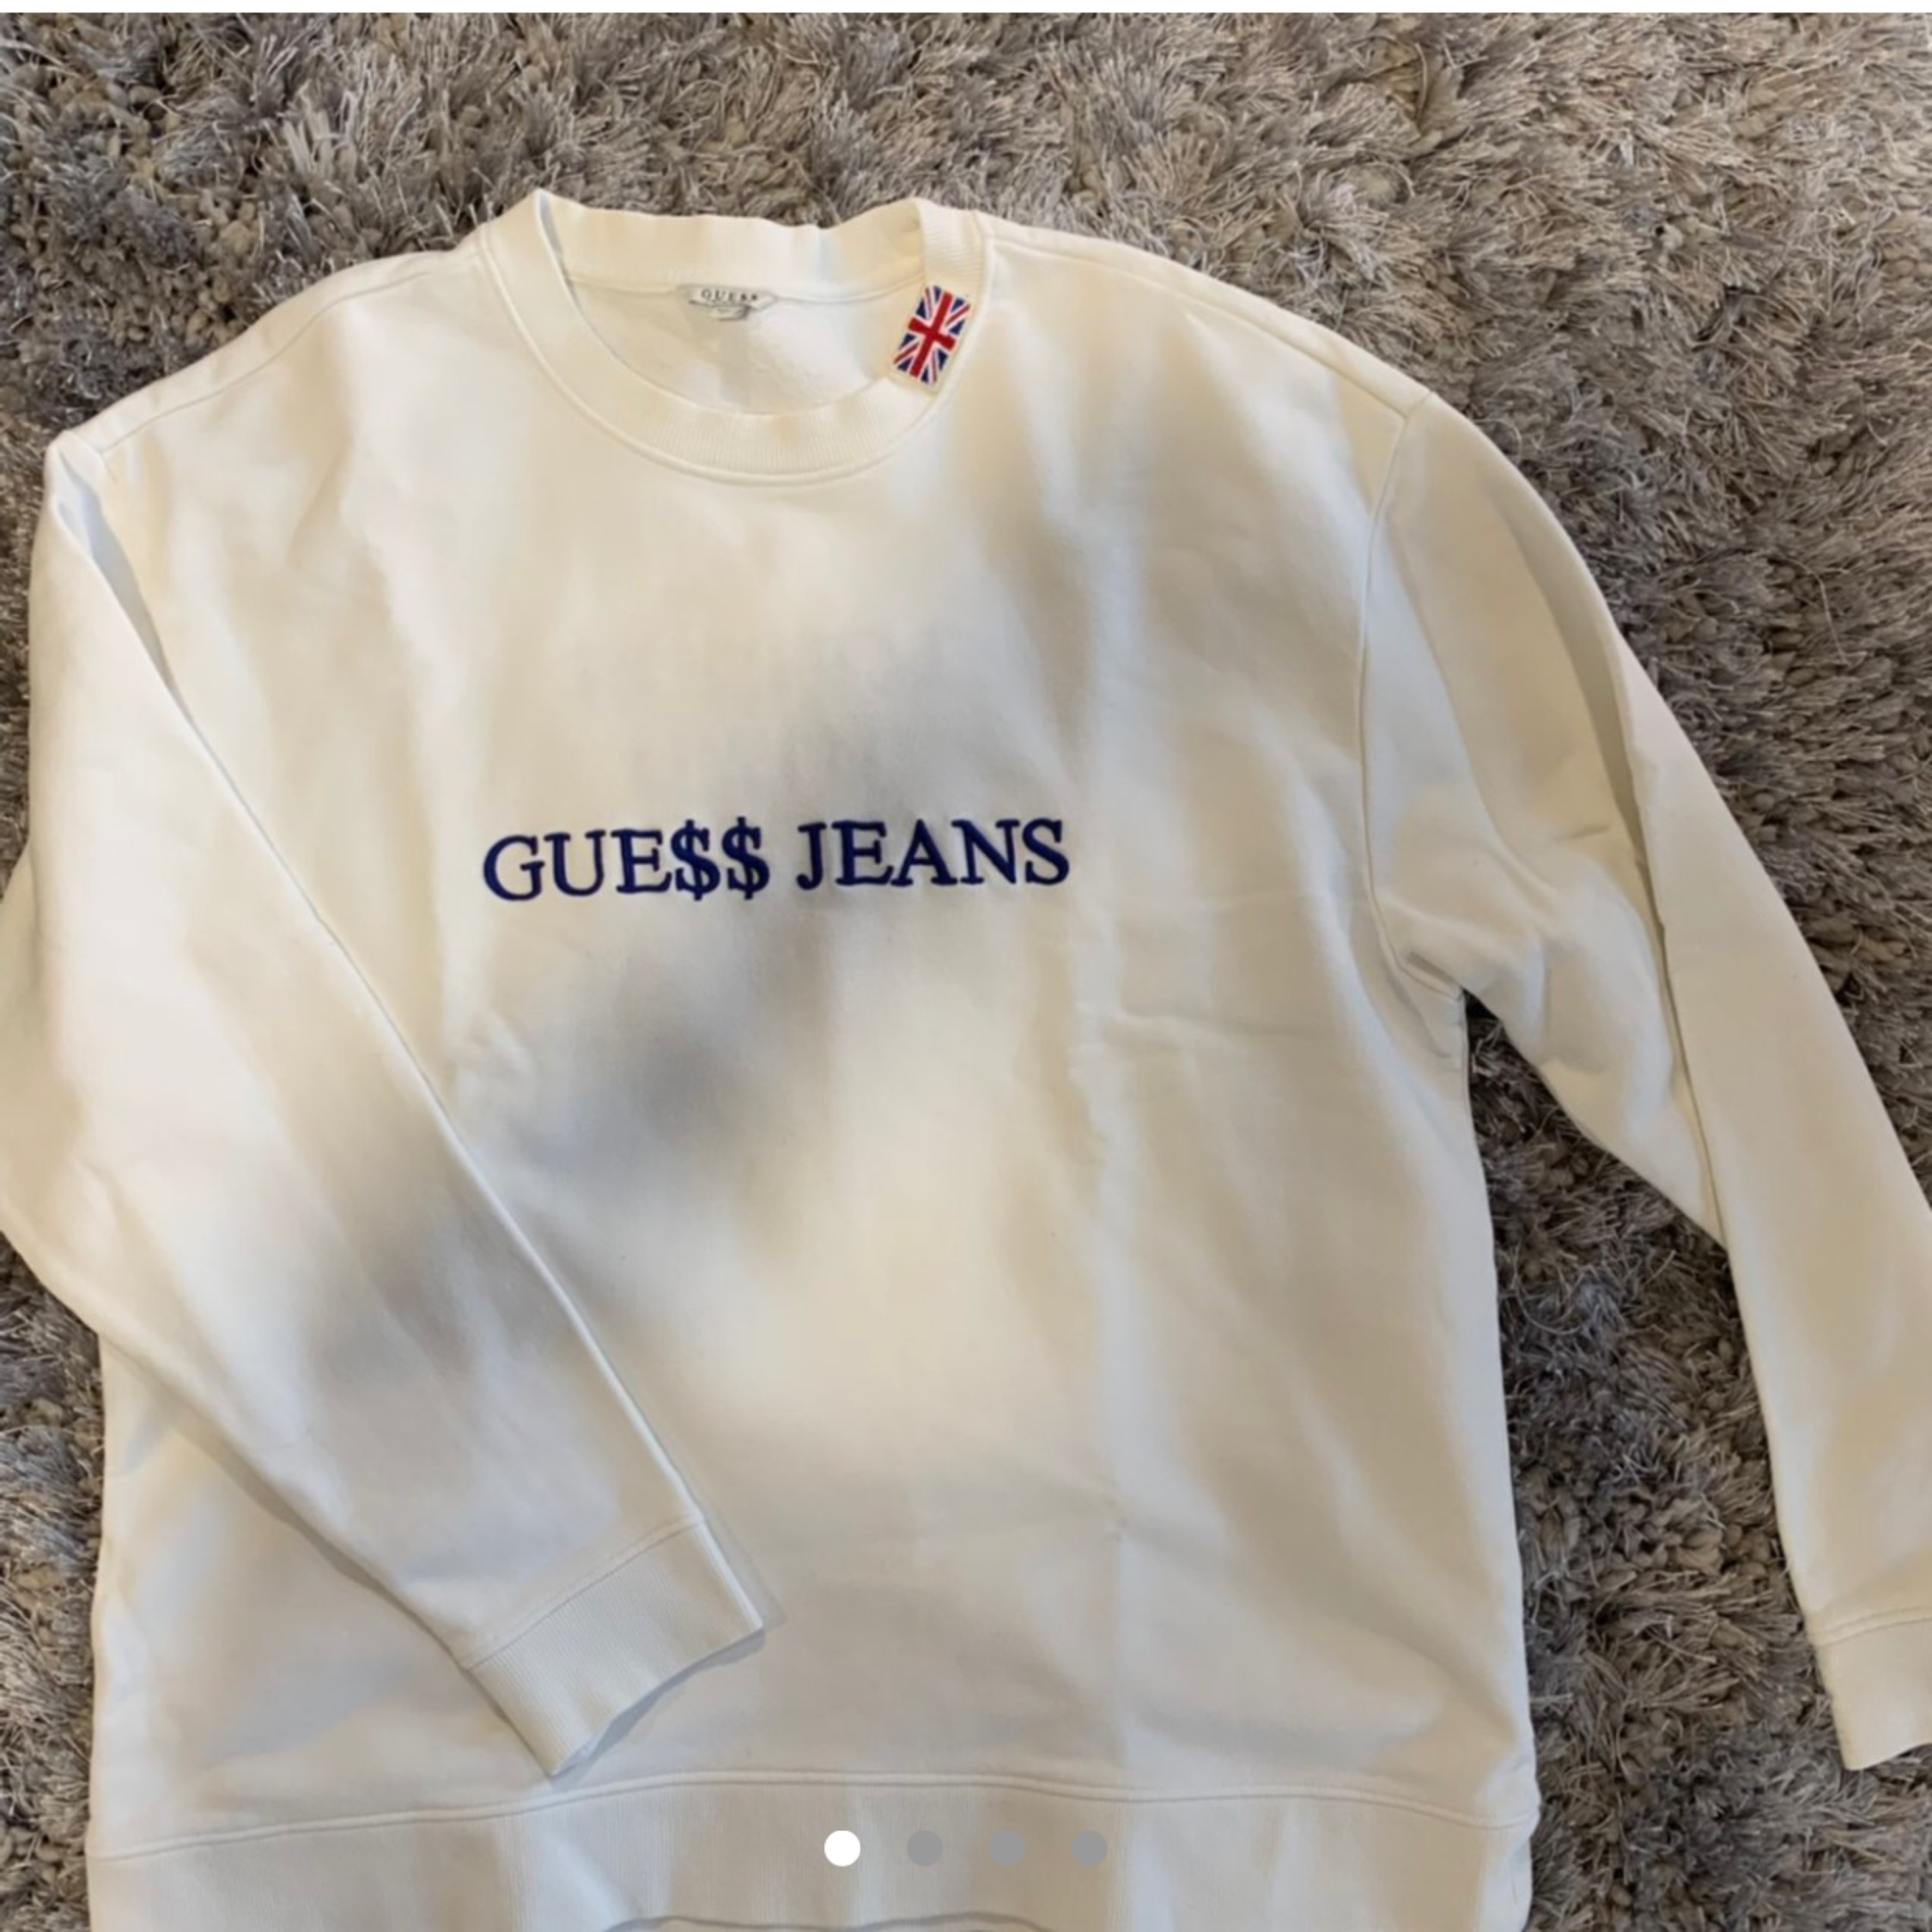 EXCLUSIVE Guess x Asap Rocky London Town Sweater, Men's